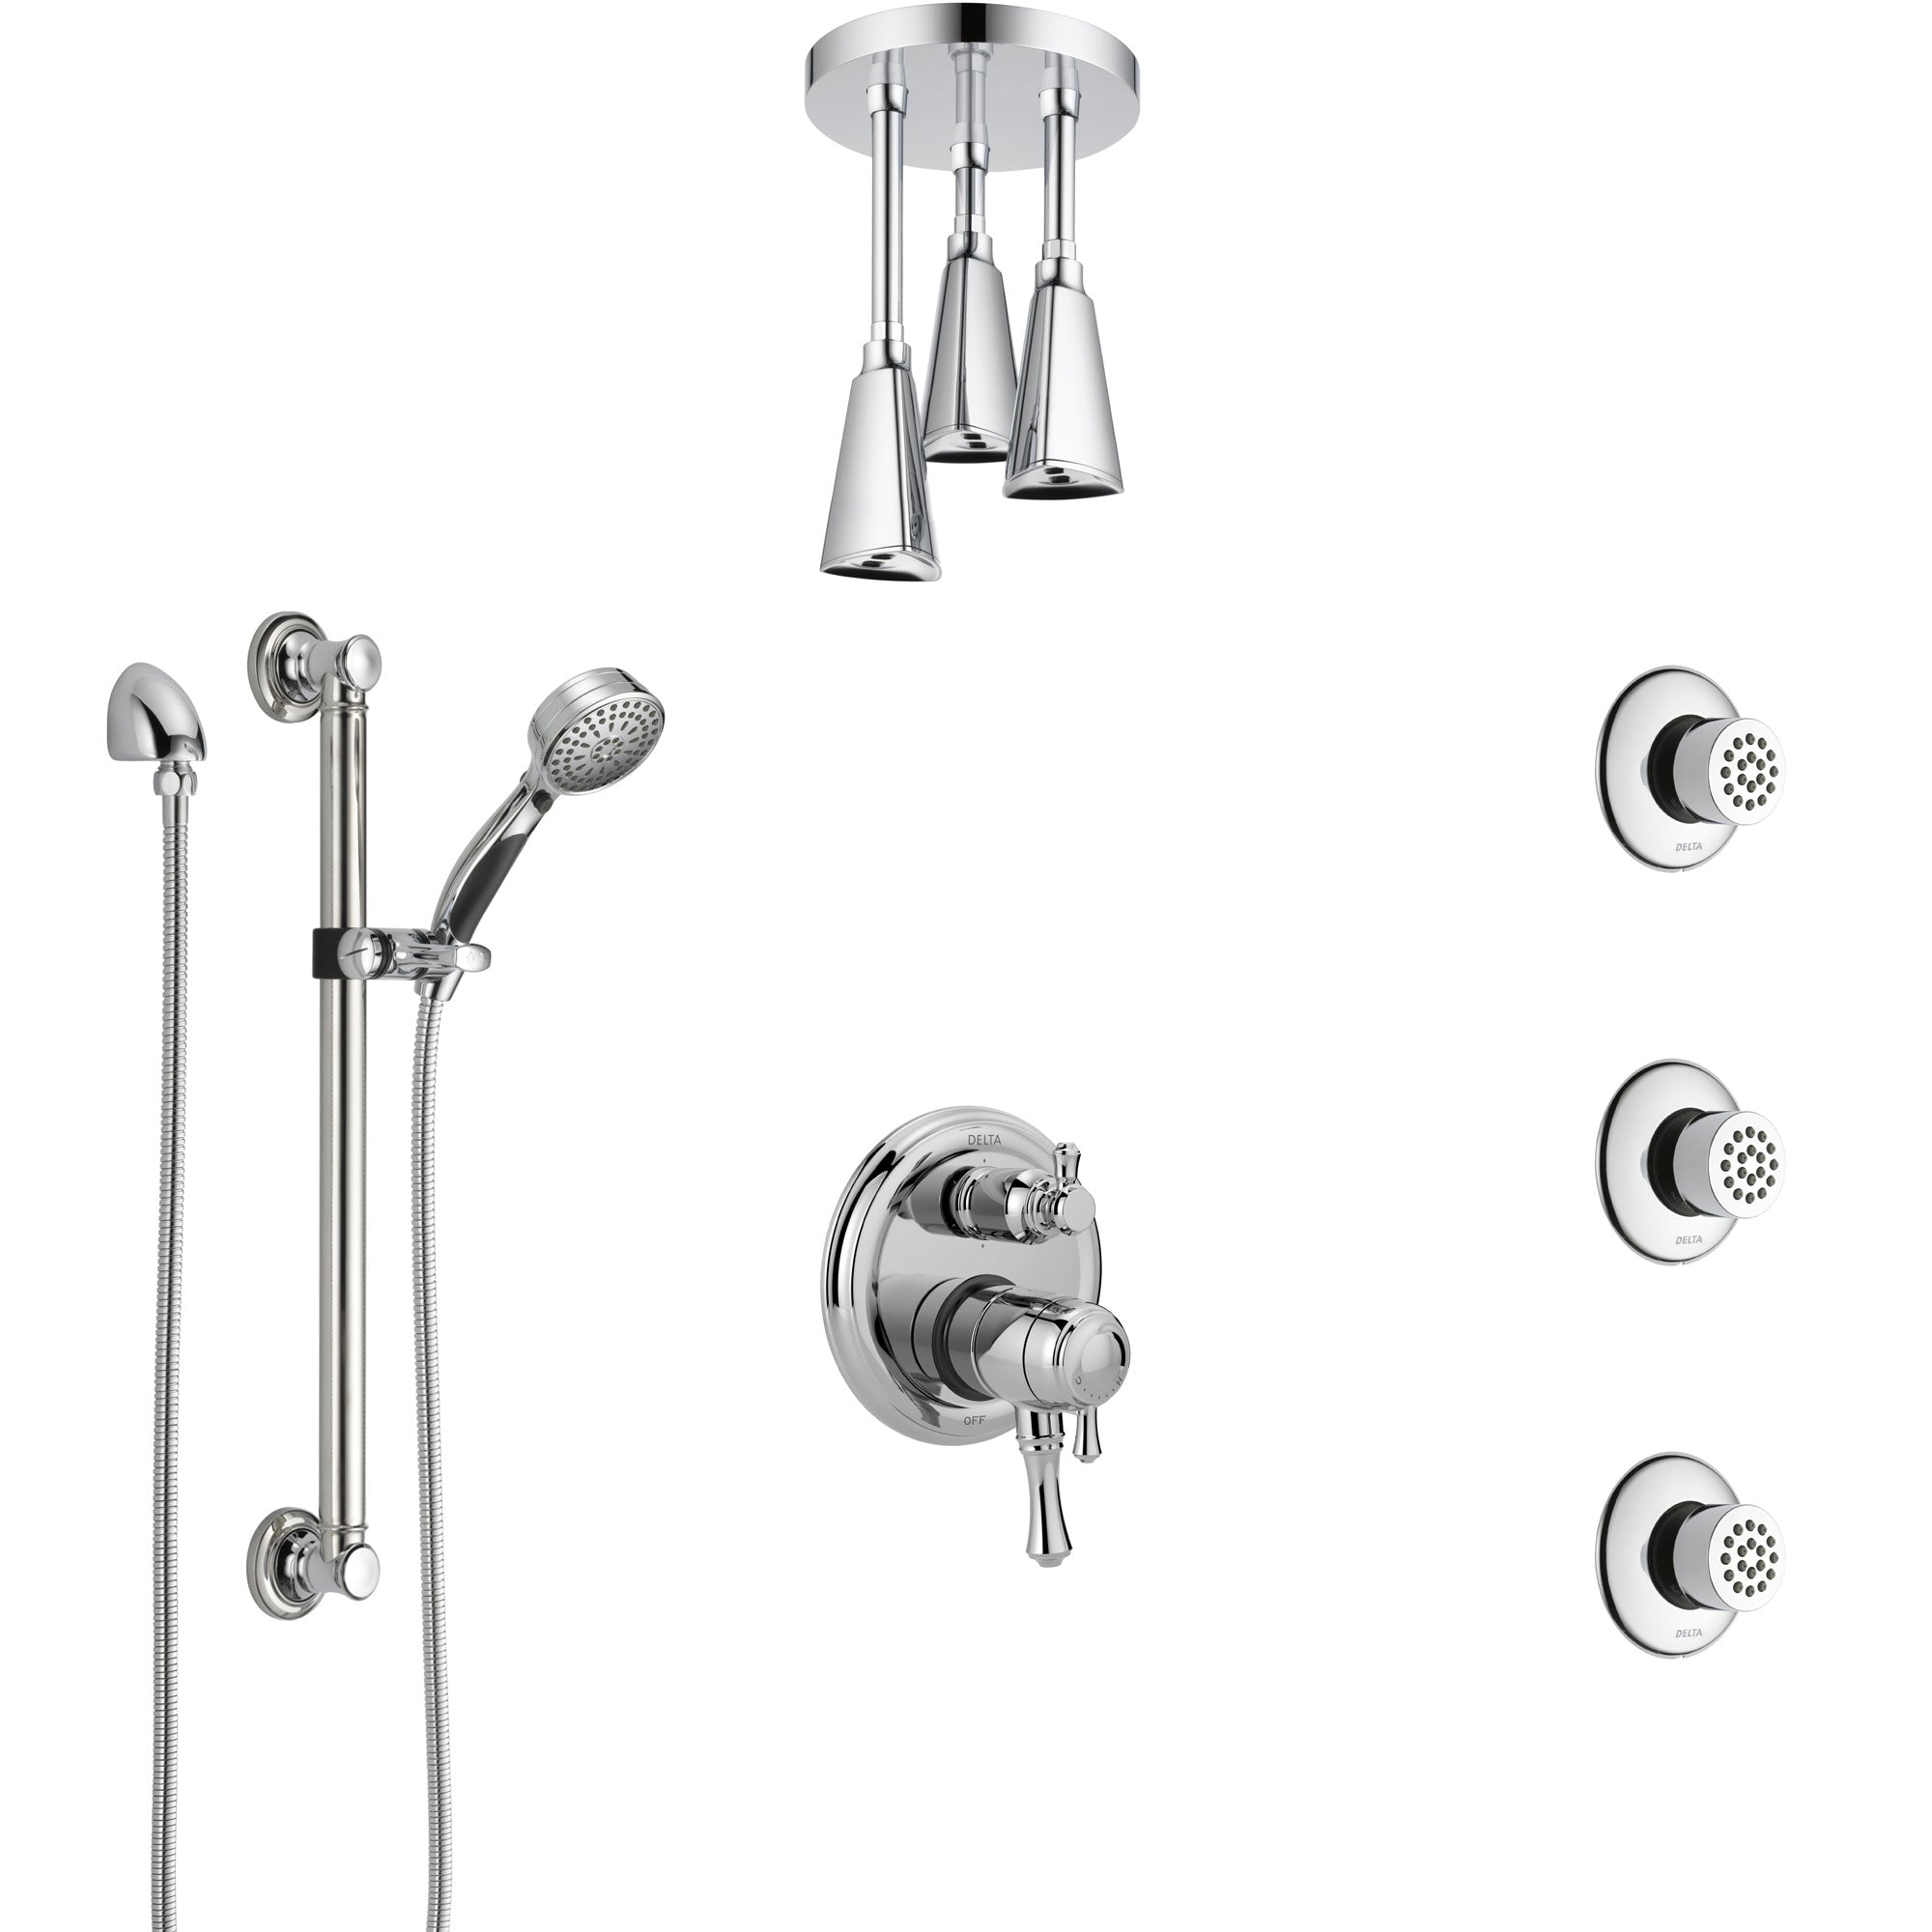 Delta Cassidy Chrome Shower System with Dual Control Handle, Integrated Diverter, Ceiling Showerhead, 3 Body Sprays, and Grab Bar Hand Spray SS2799712